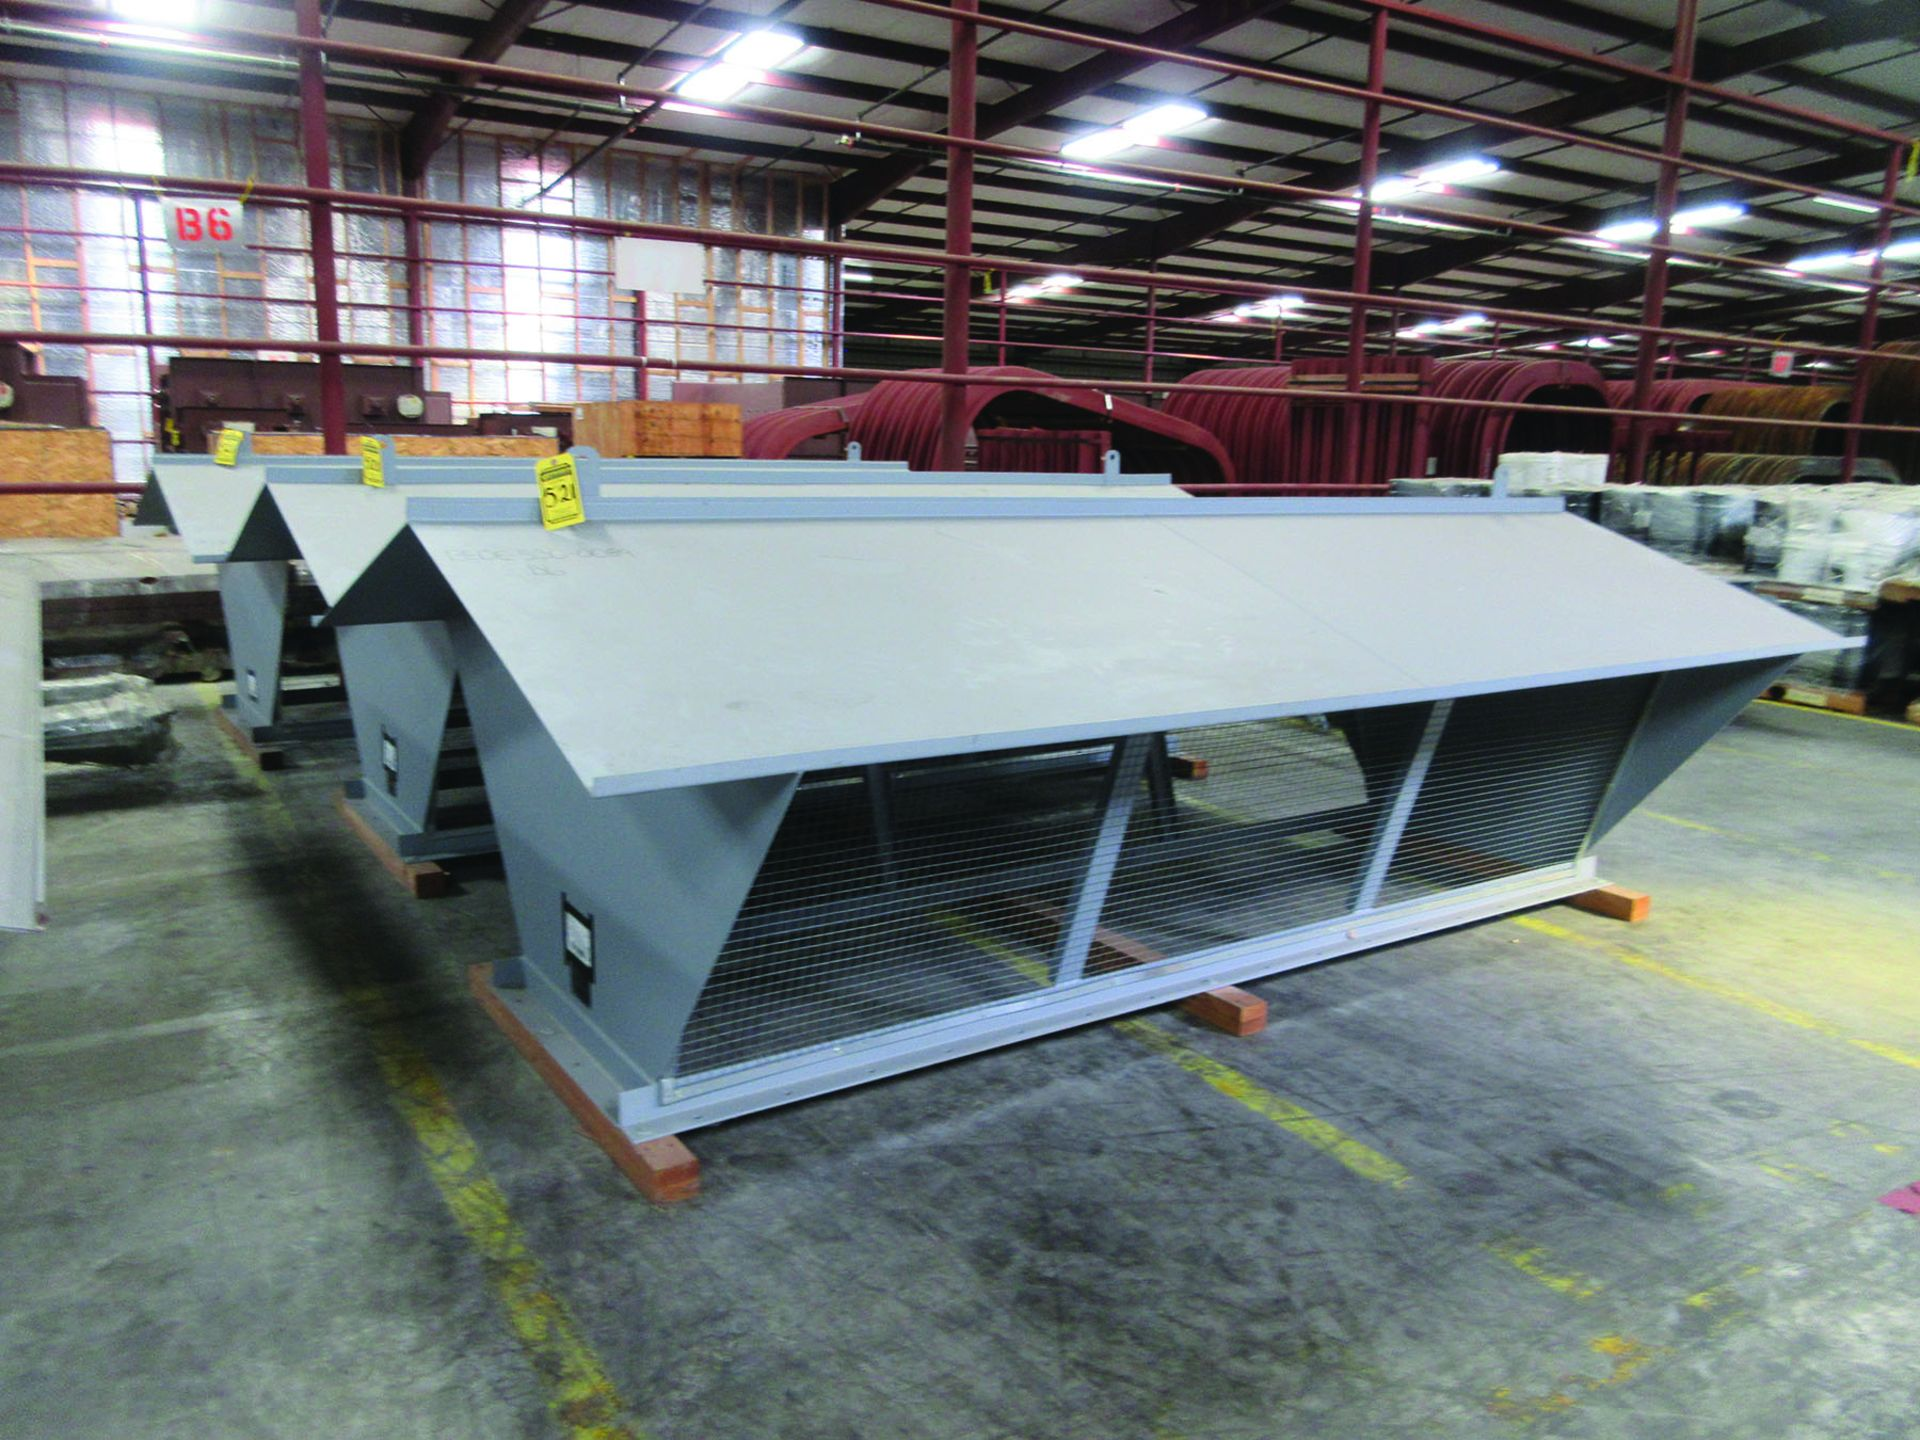 (4) FANS, MODEL 33VR1B-54, WEIGHTS: 4,122 LB. EACH, DIMENSIONS: 132'' X 45'' X 79'', ALSO RODS, - Image 3 of 10